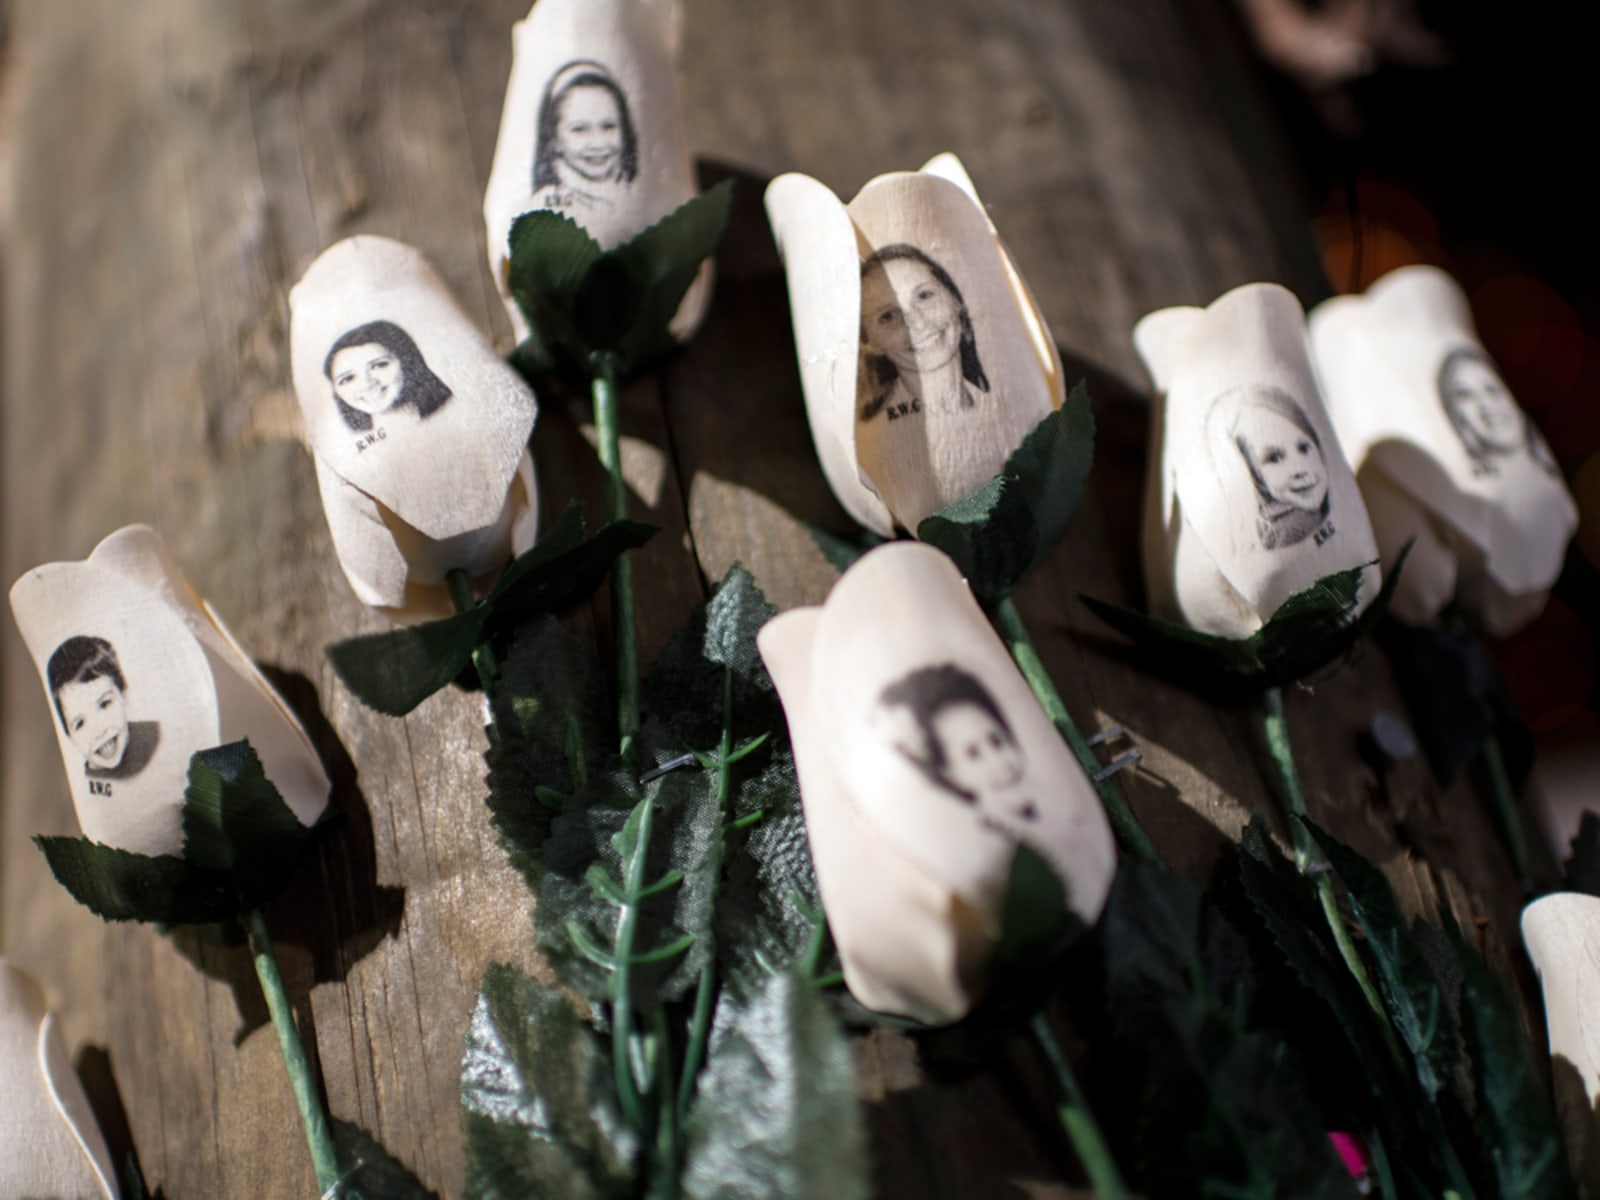 Image: Victims of the Sandy Hook Elementary School shooting are seen on artificial roses at a roadside memorial.